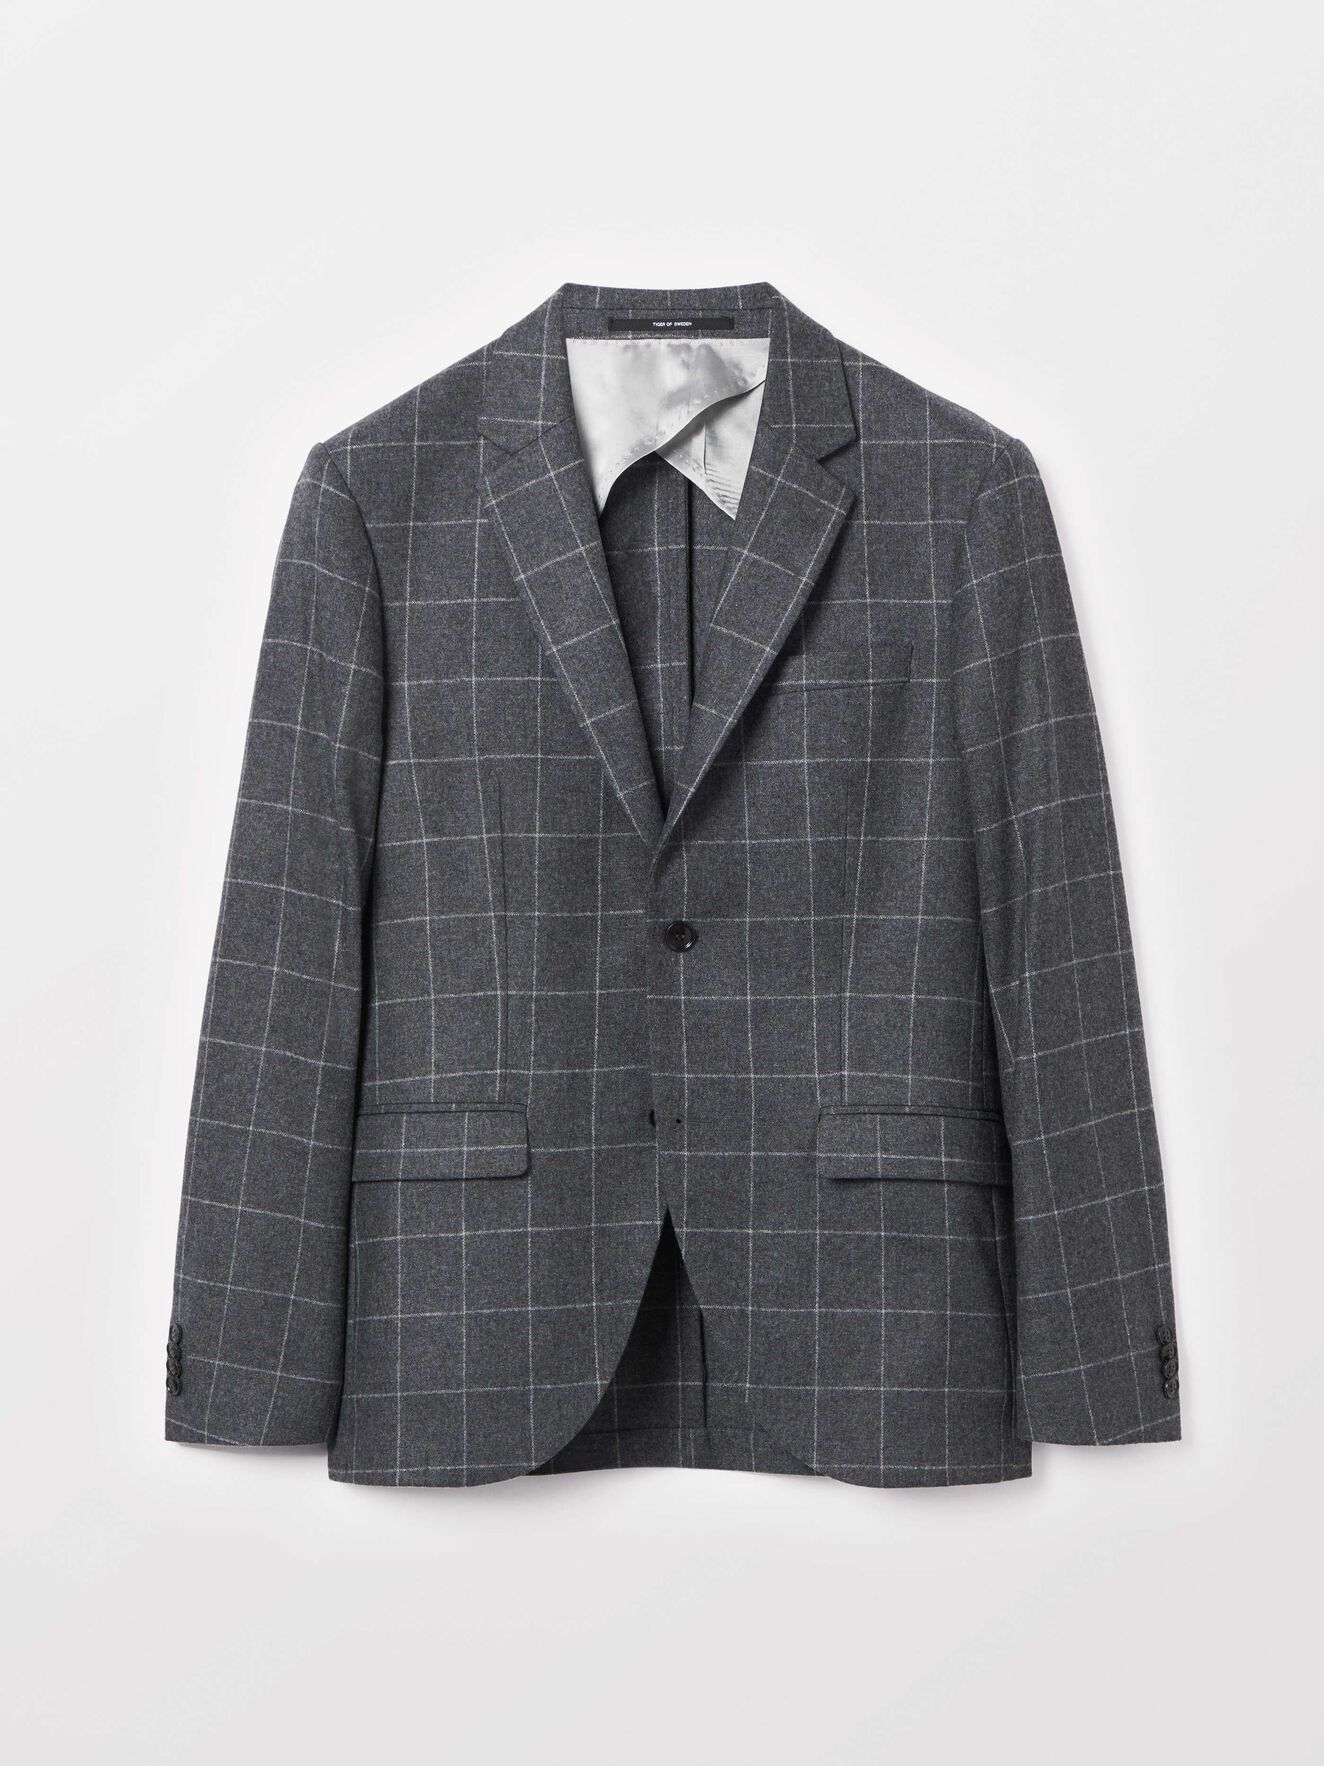 Jamonte Hl Blazer in Iron Gate from Tiger of Sweden